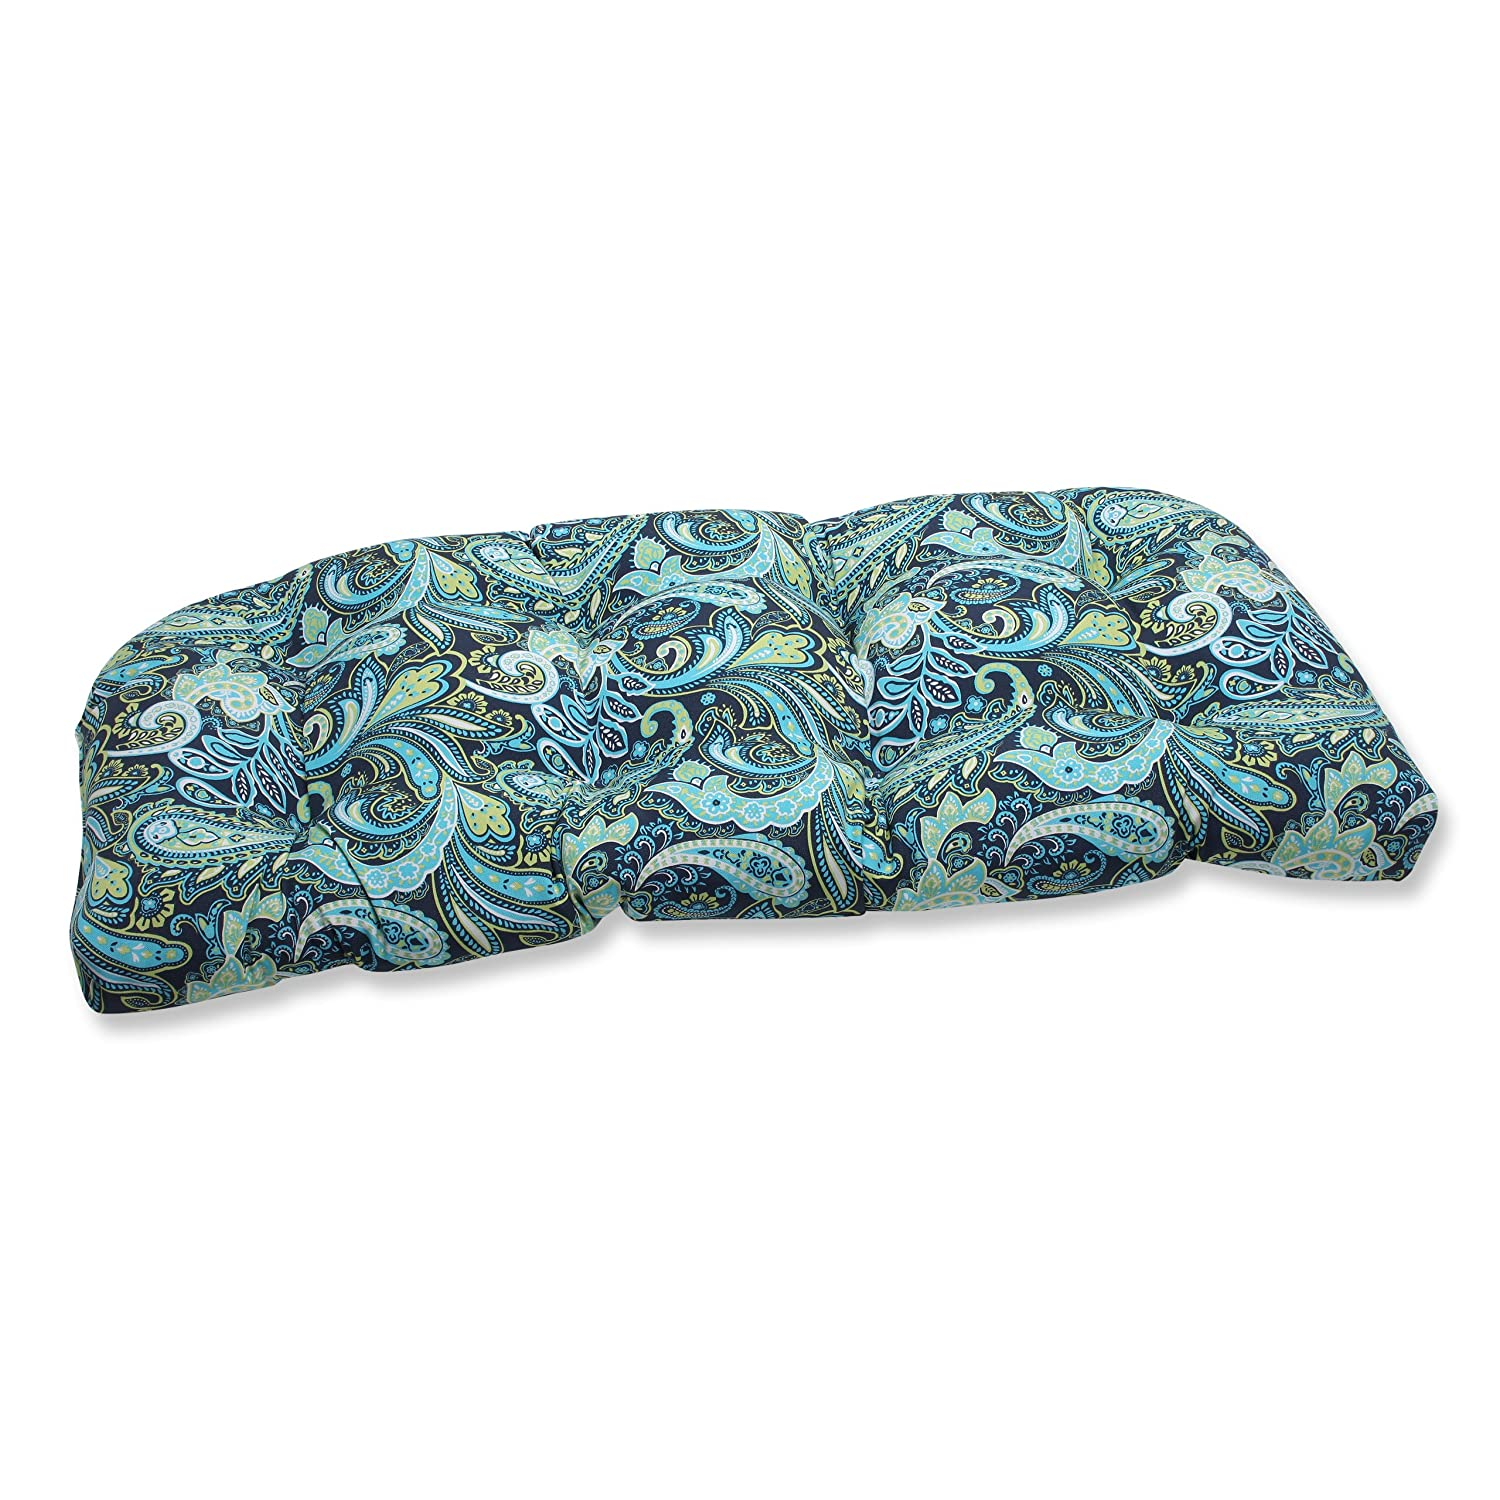 Pillow Perfect Outdoor/Indoor Pretty Paisley Navy Wicker Loveseat Cushion Inc. 543819